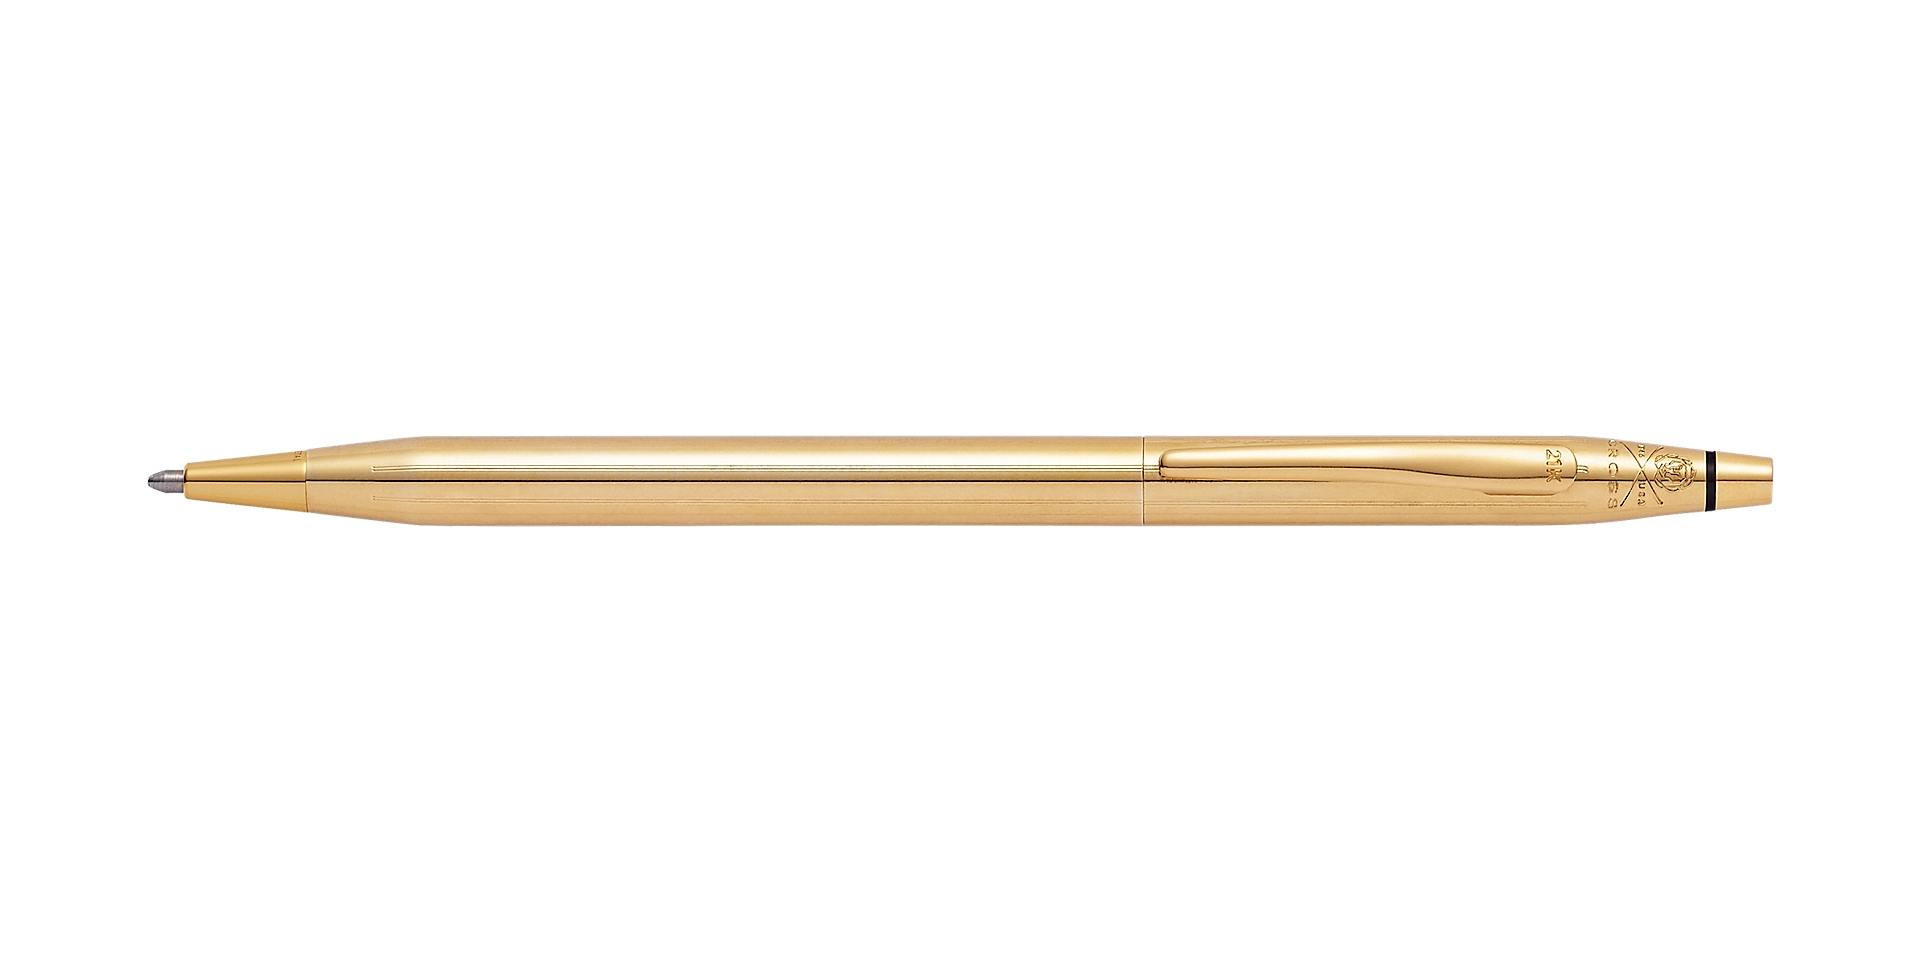 Cross 21st Century Limited-Edition 21K Solid-Gold Ballpoint Pen Picture